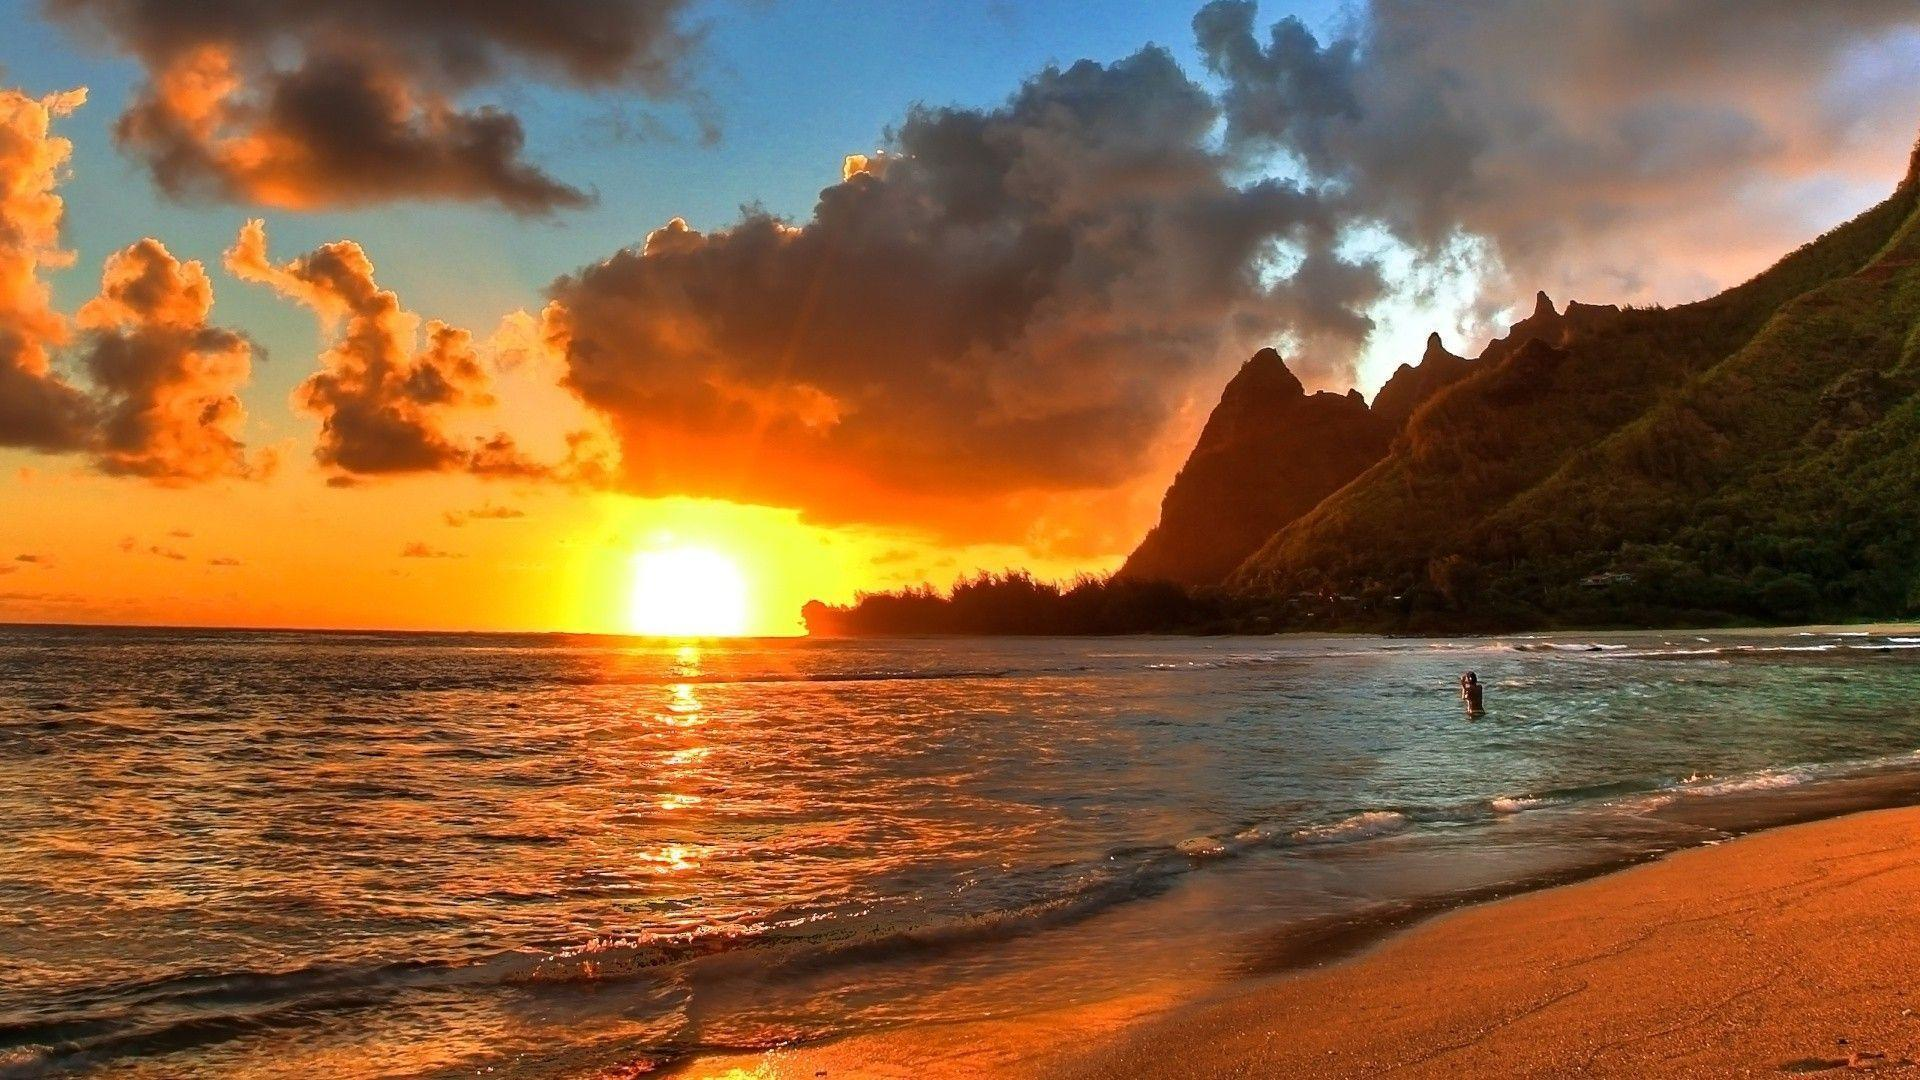 Hawaii sunset wallpapers wallpaper cave for Paesaggi bellissimi per desktop